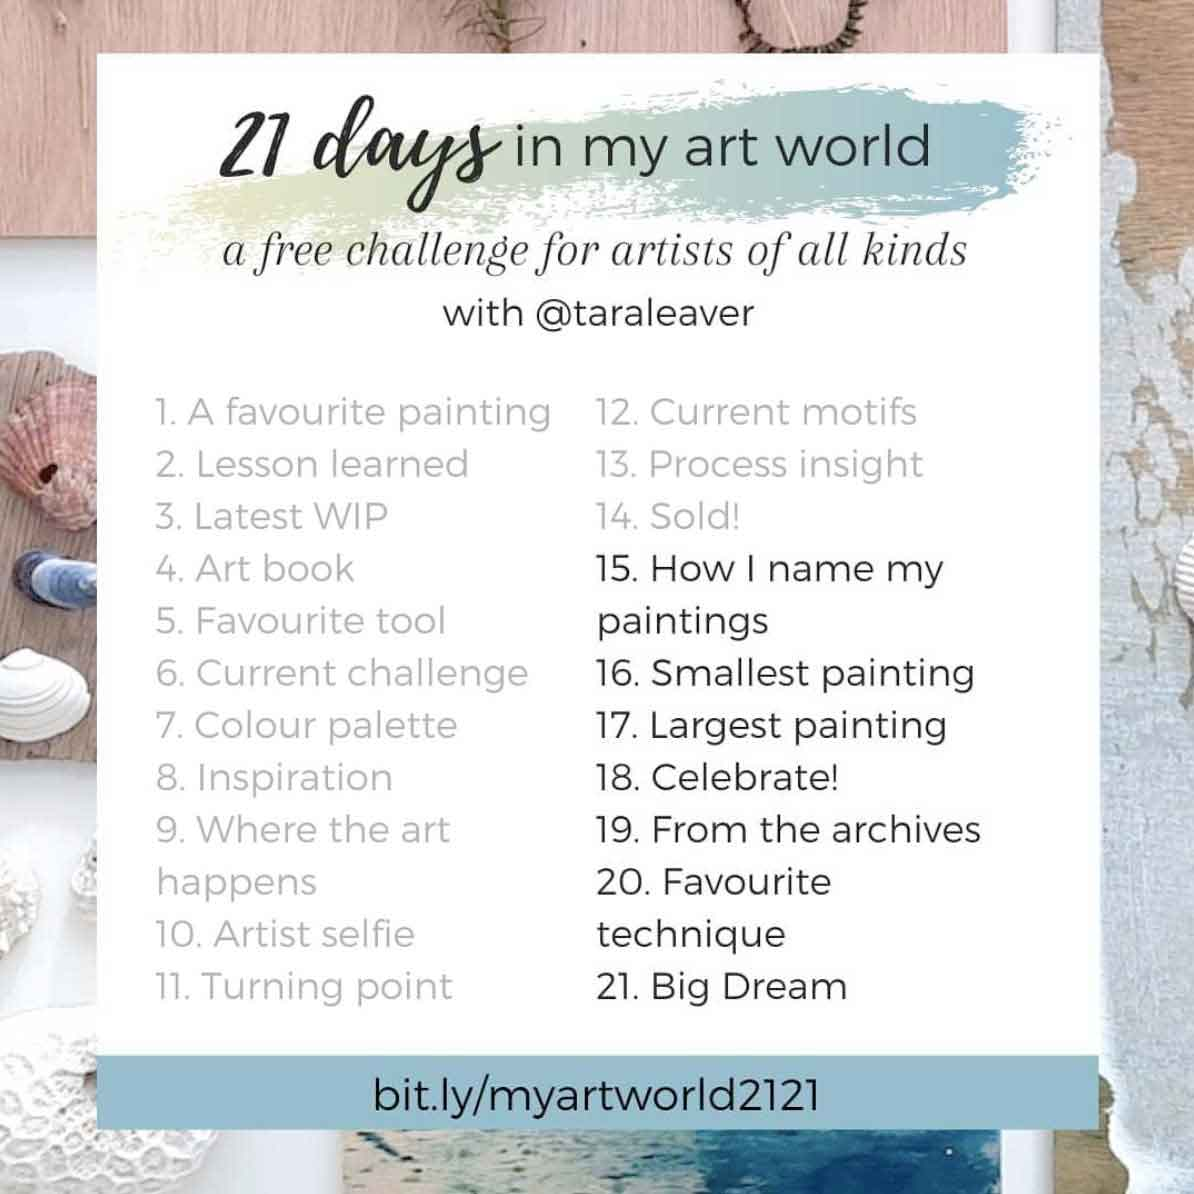 21 days in my art world – 2021, Week 3 - Days 15-21